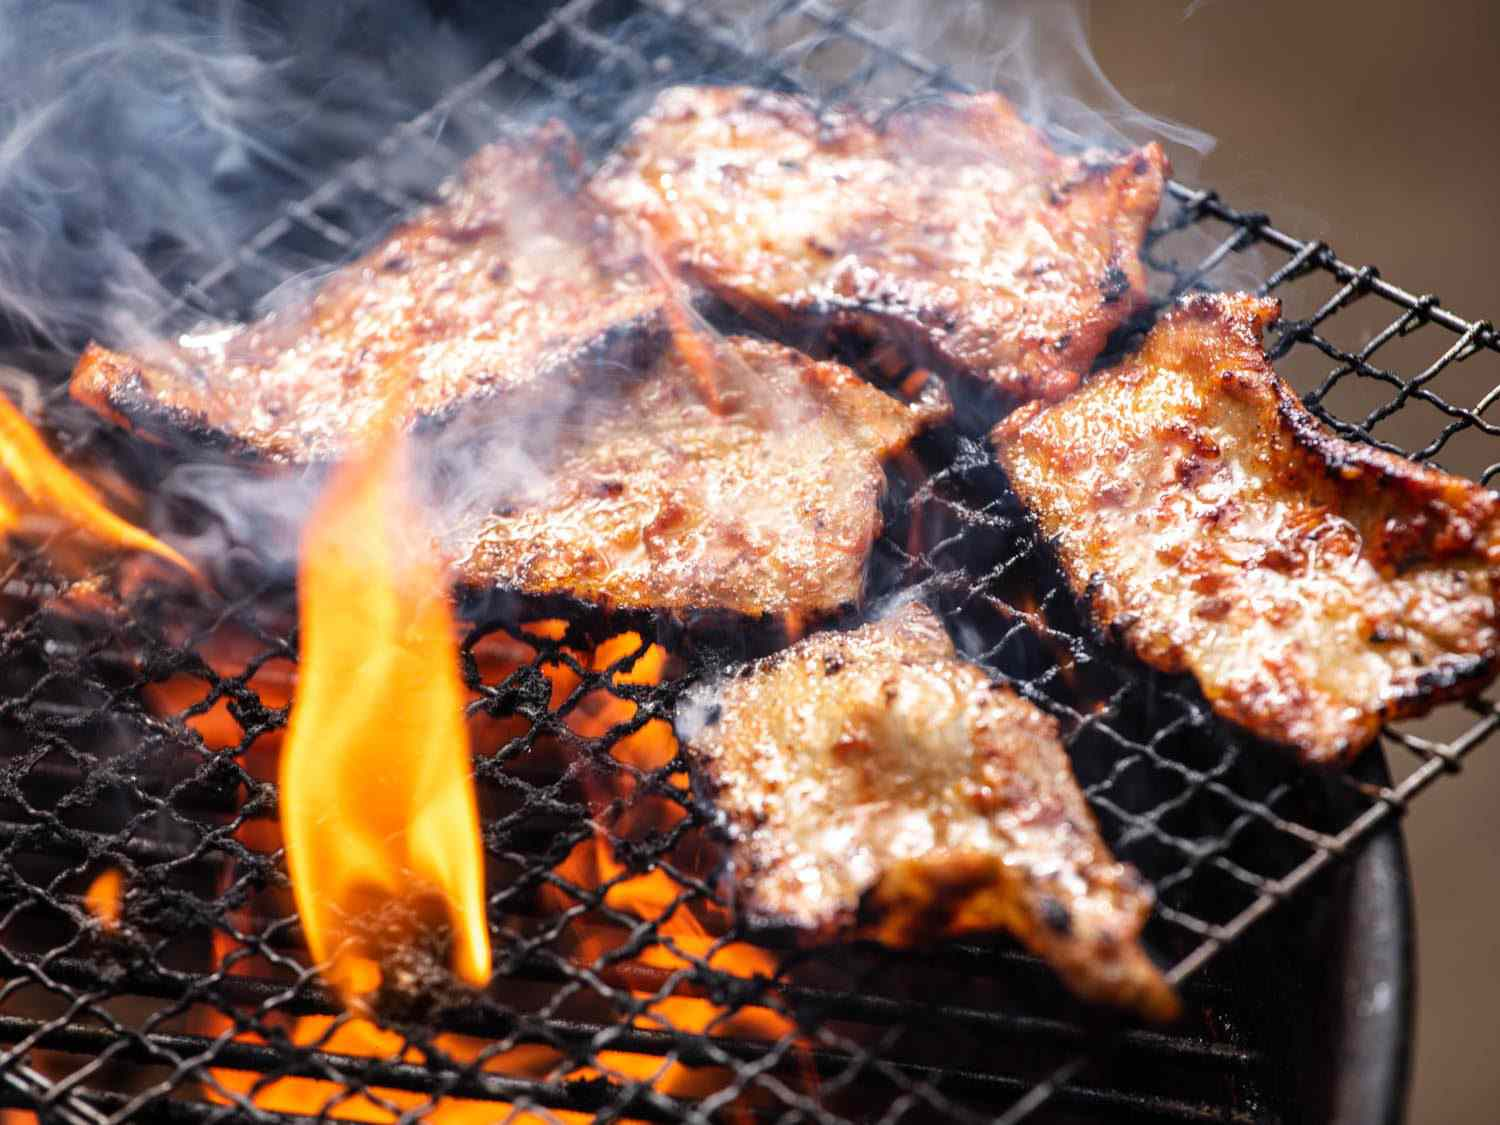 Flames licking up the sides of pieces of pork belly on the grill.